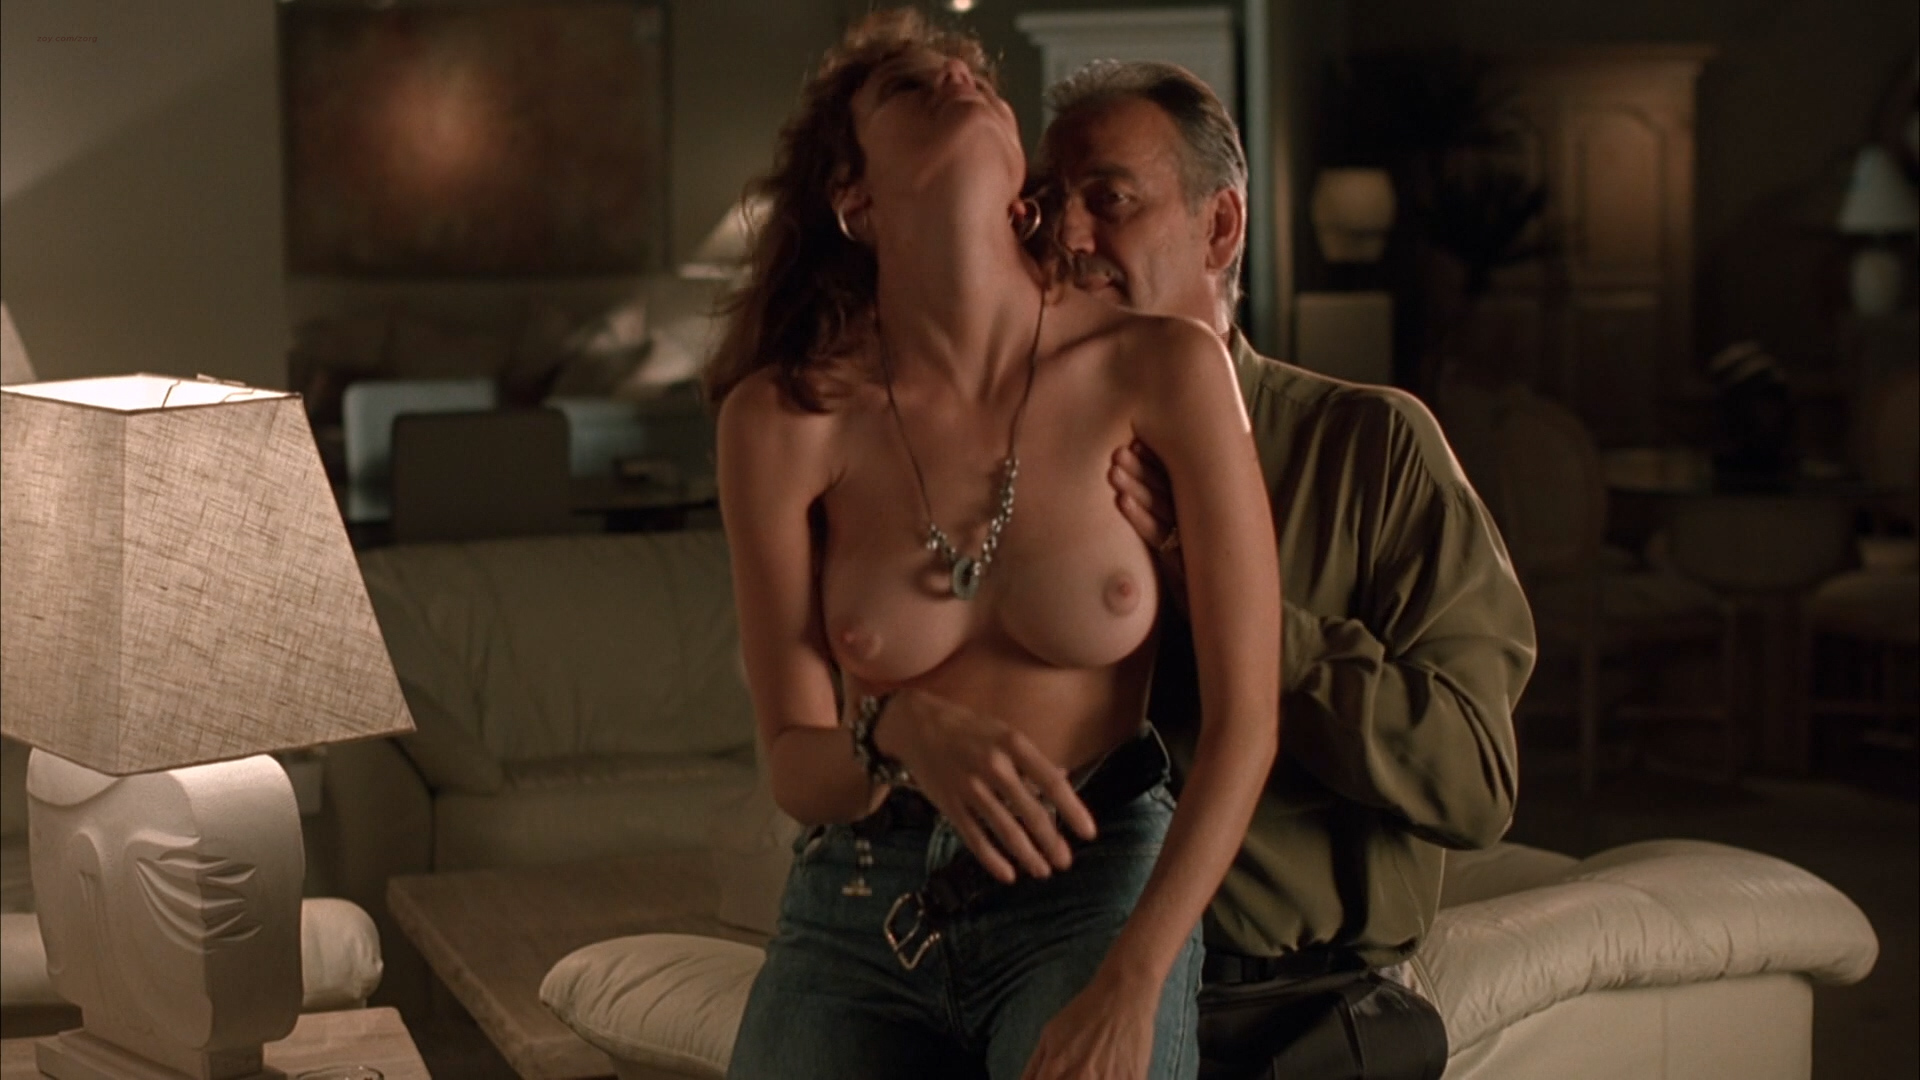 Seems me, Mimi rogers naked